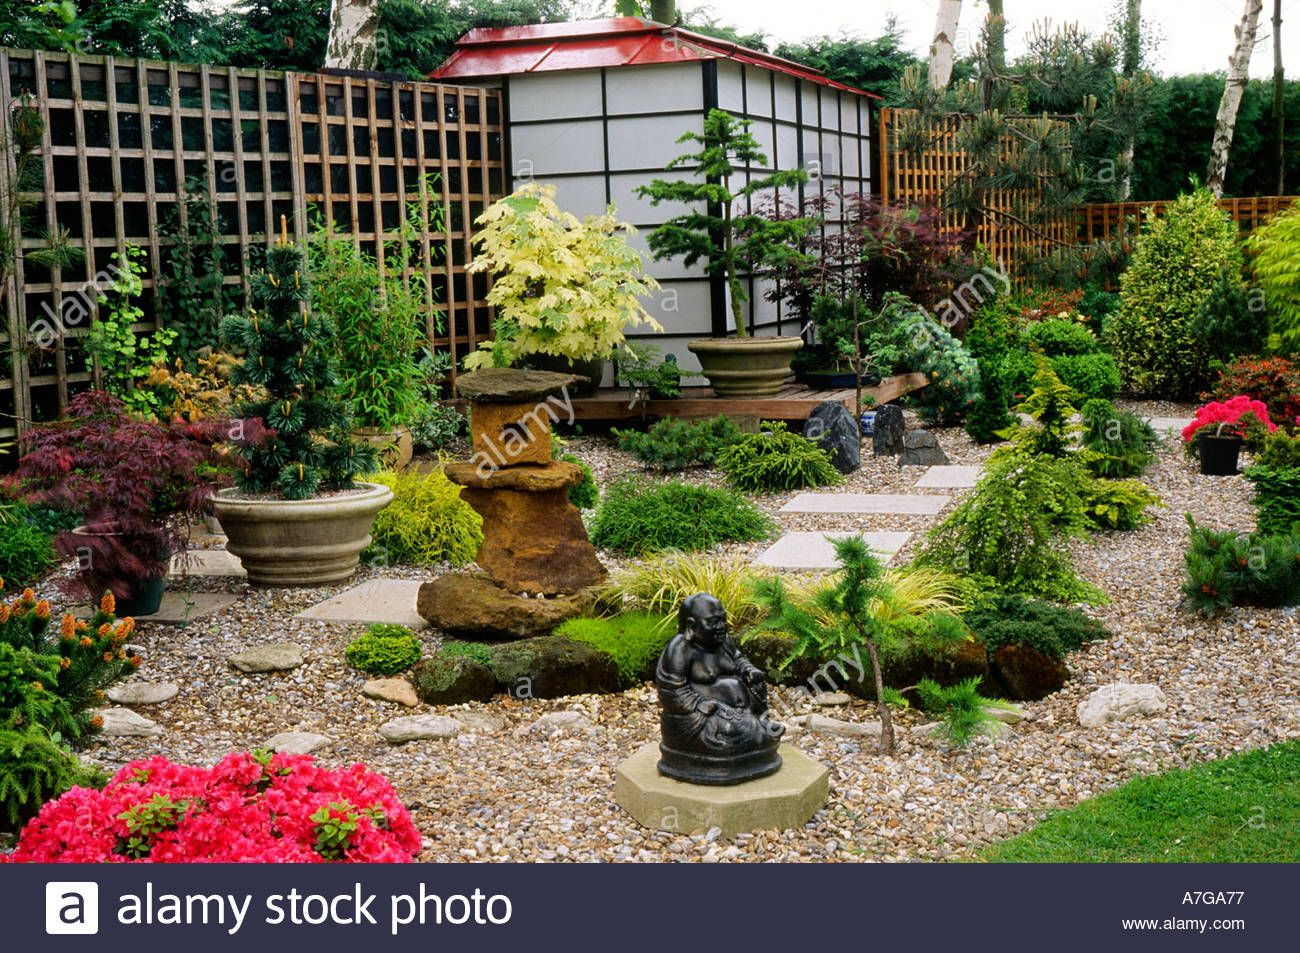 Image result for japanese style garden ideas uk | Japán ...